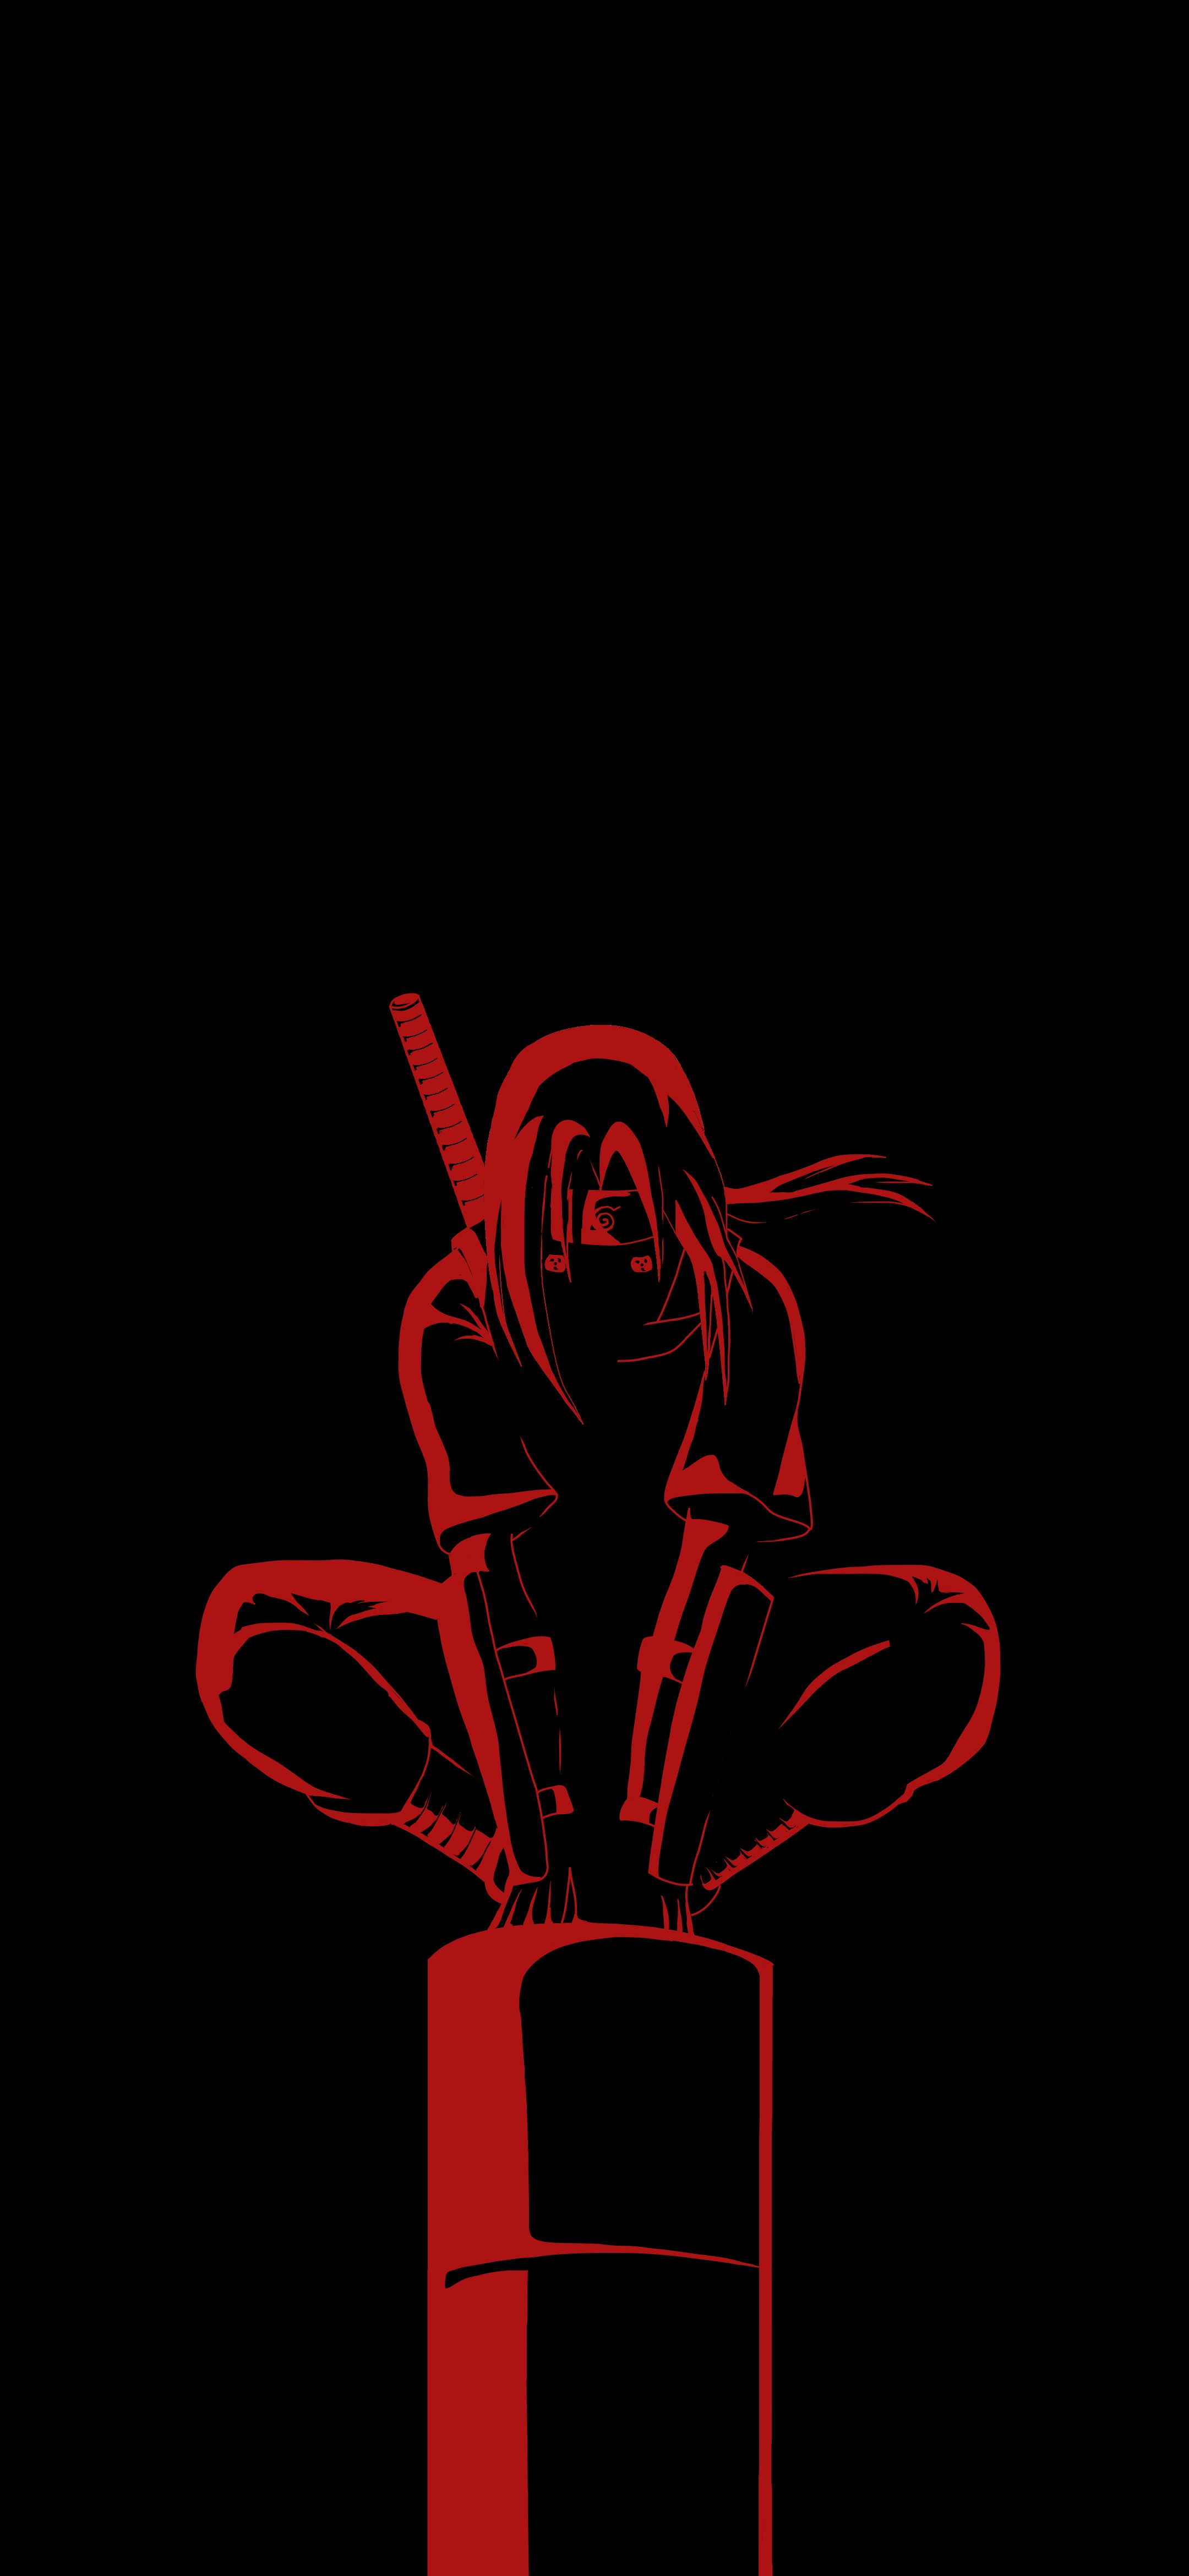 Itachi Wallpaper Red Moon 46 Itachi Phone Wallpaper On Wallpapersafari Some Content Is For Members Only Please Sign Up To See All Content